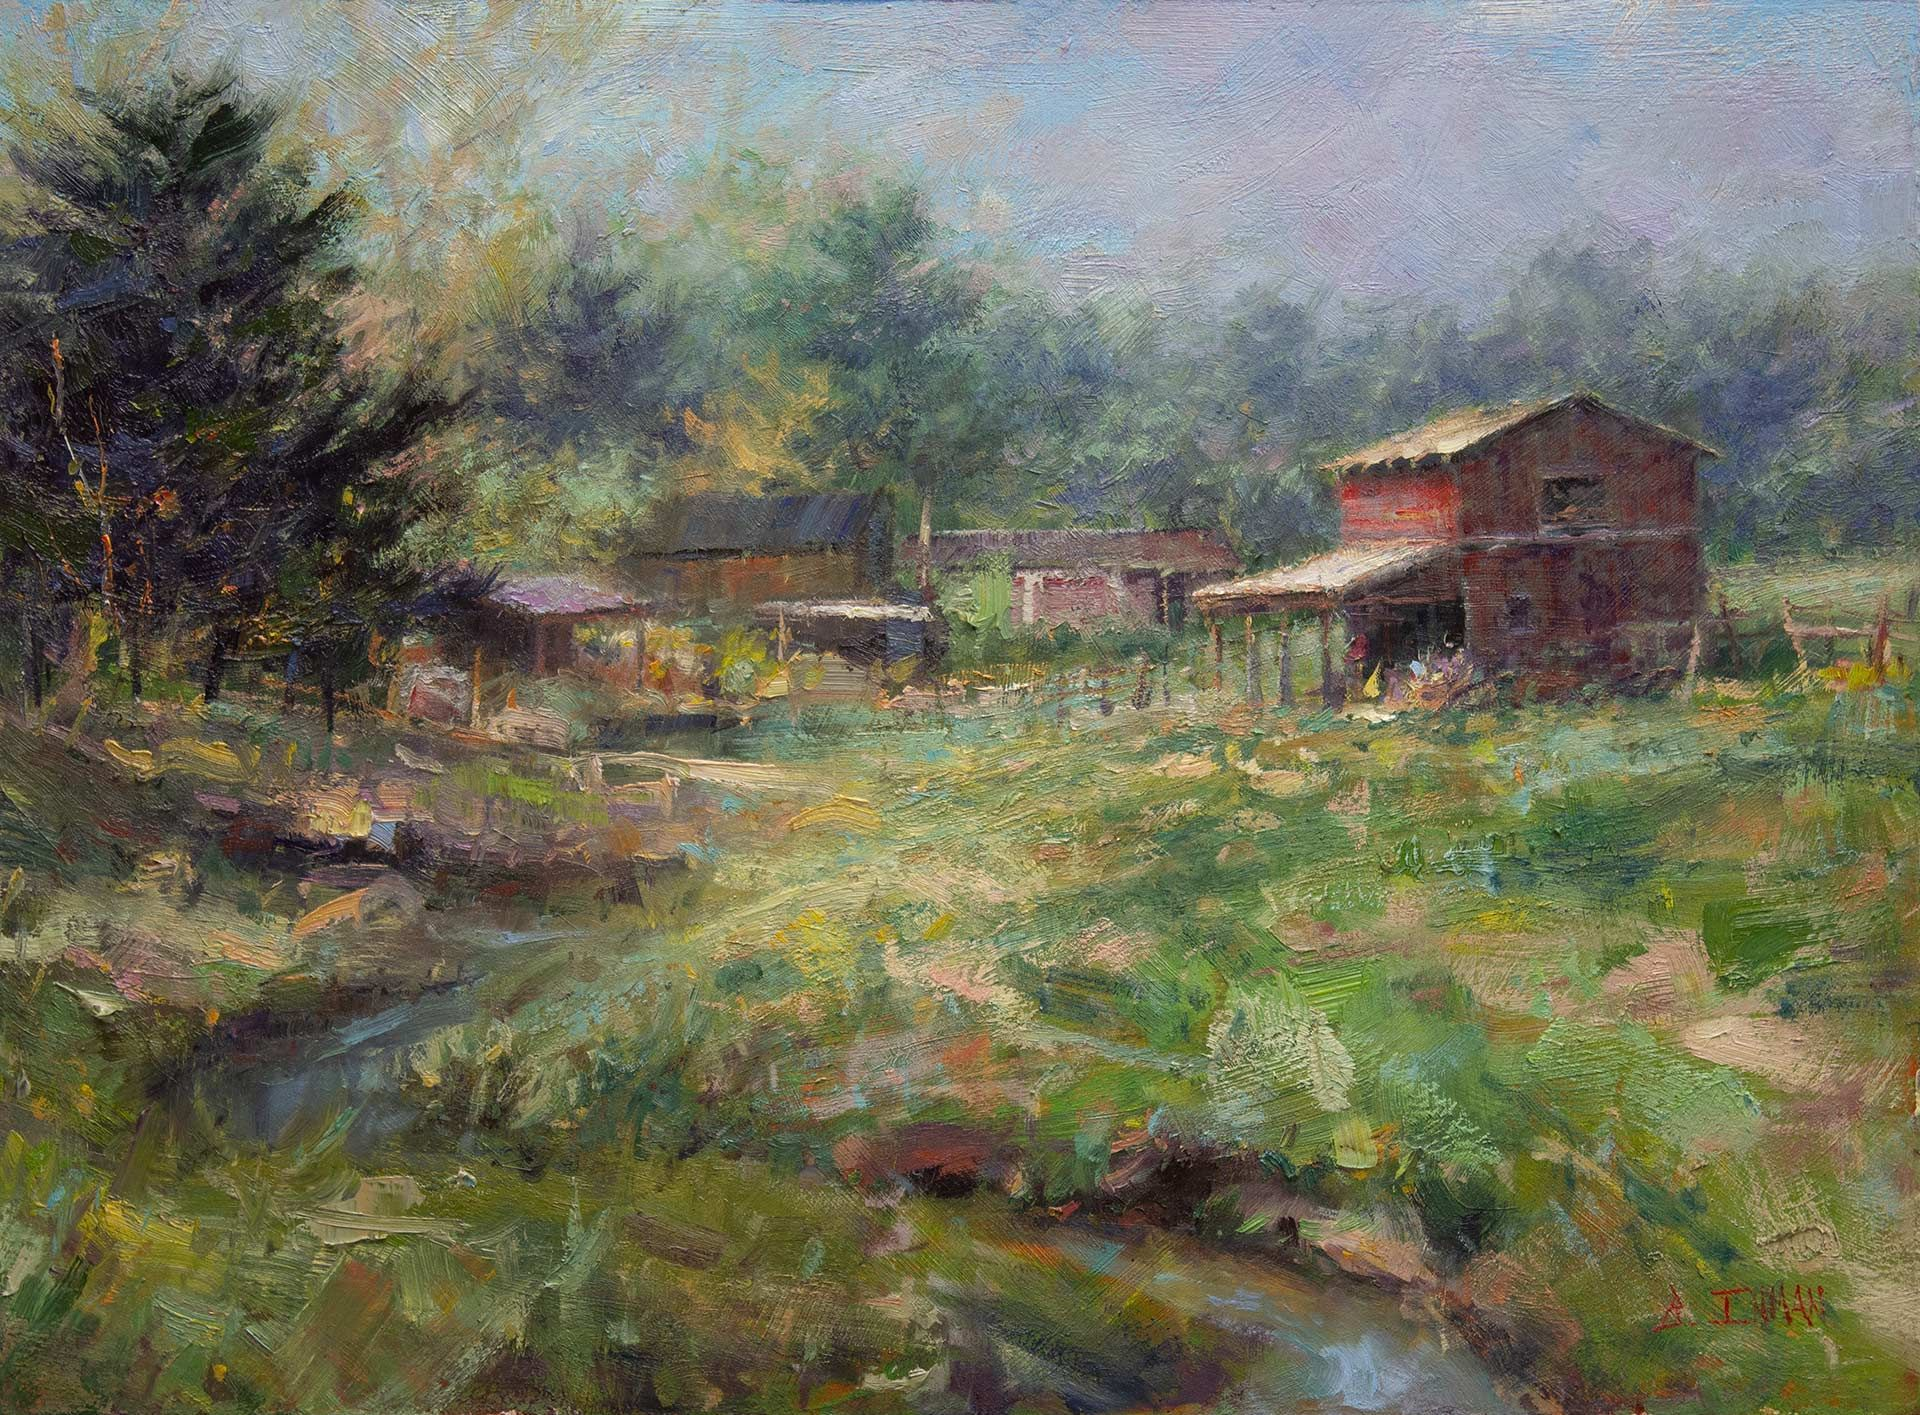 The Powerful Combination of Plein Air and Studio Painting